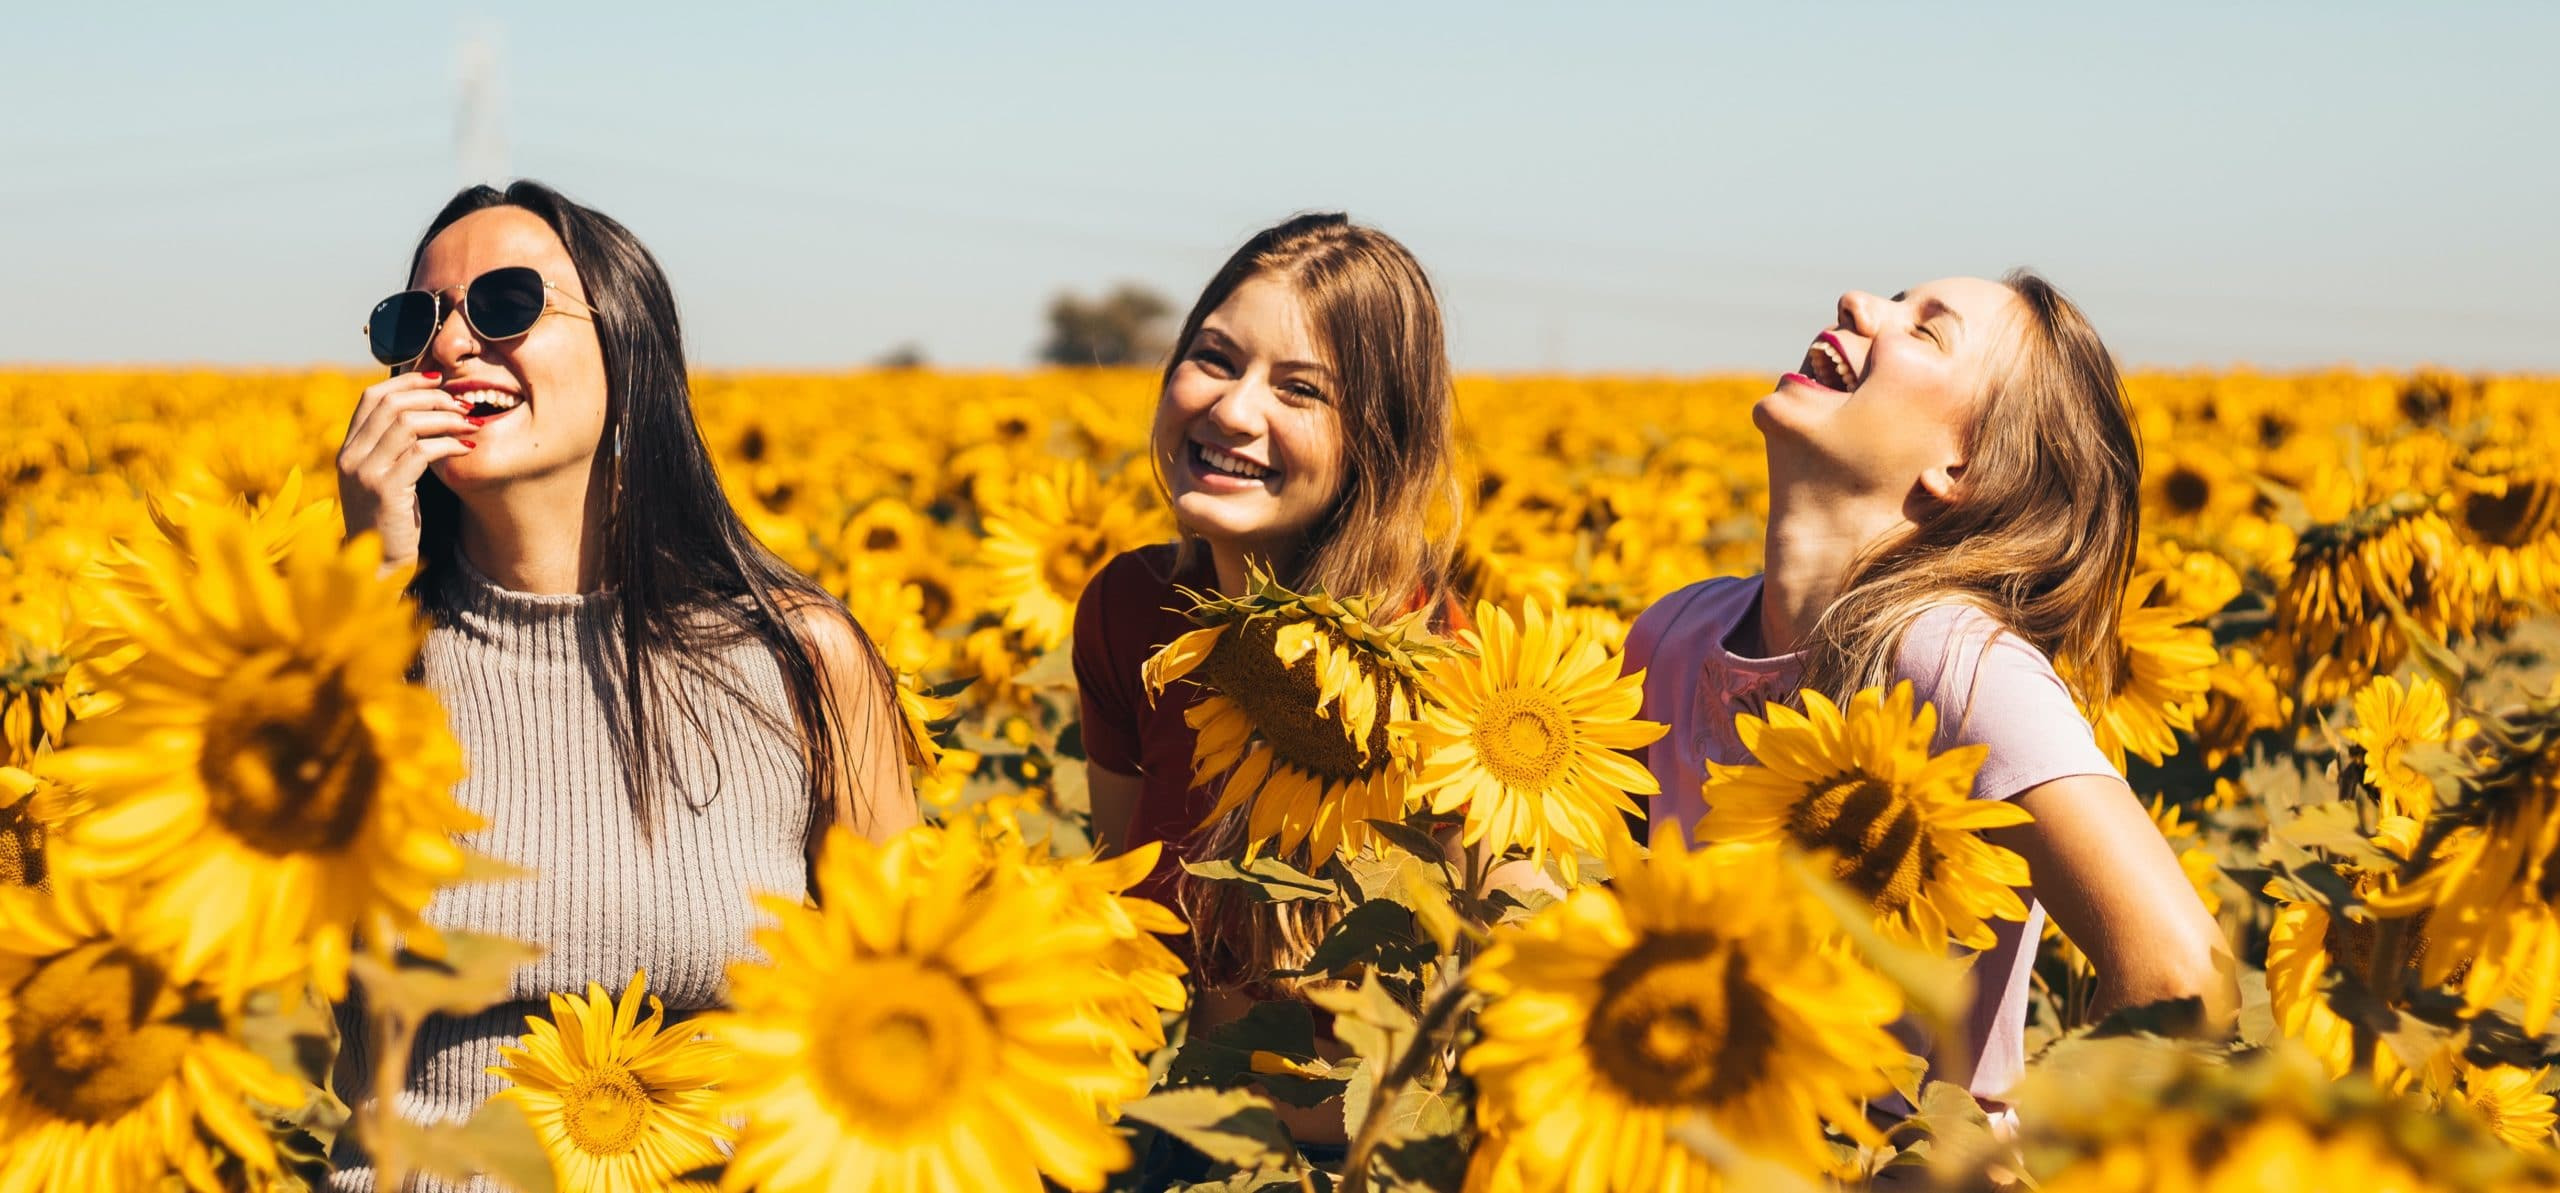 Three women laughing in a field of sunflowers